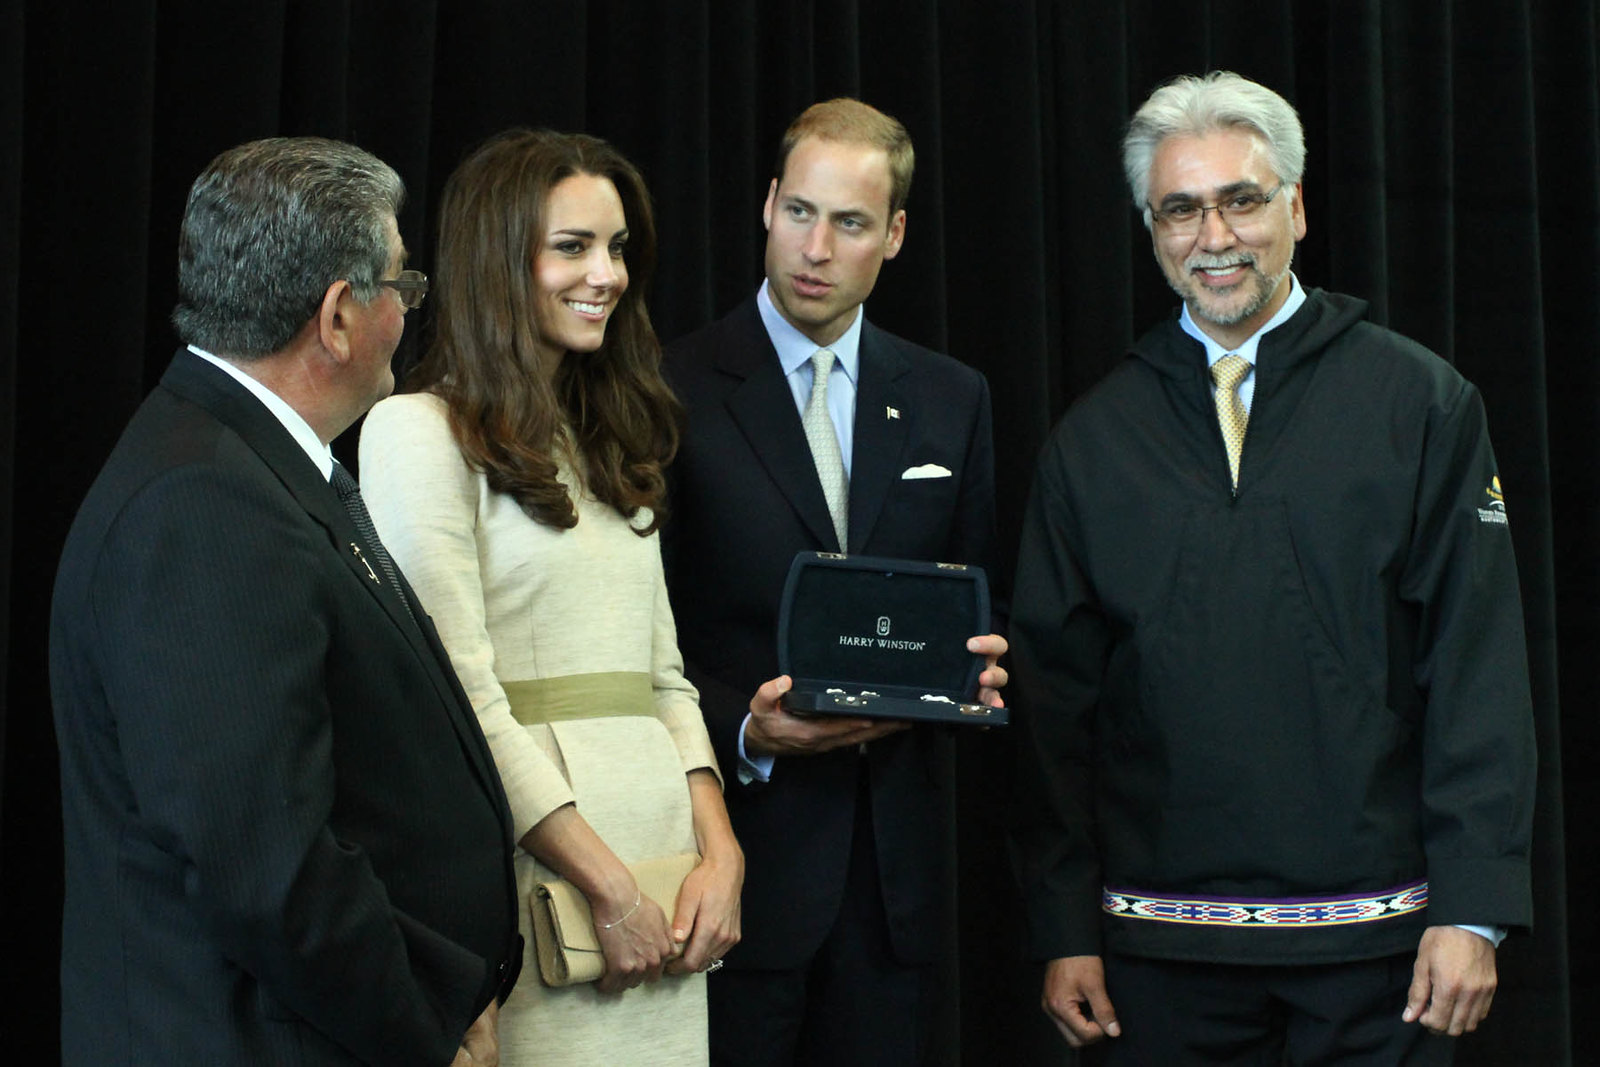 The Duchess of Cambridge received diamond brooch during canada tour in 2011